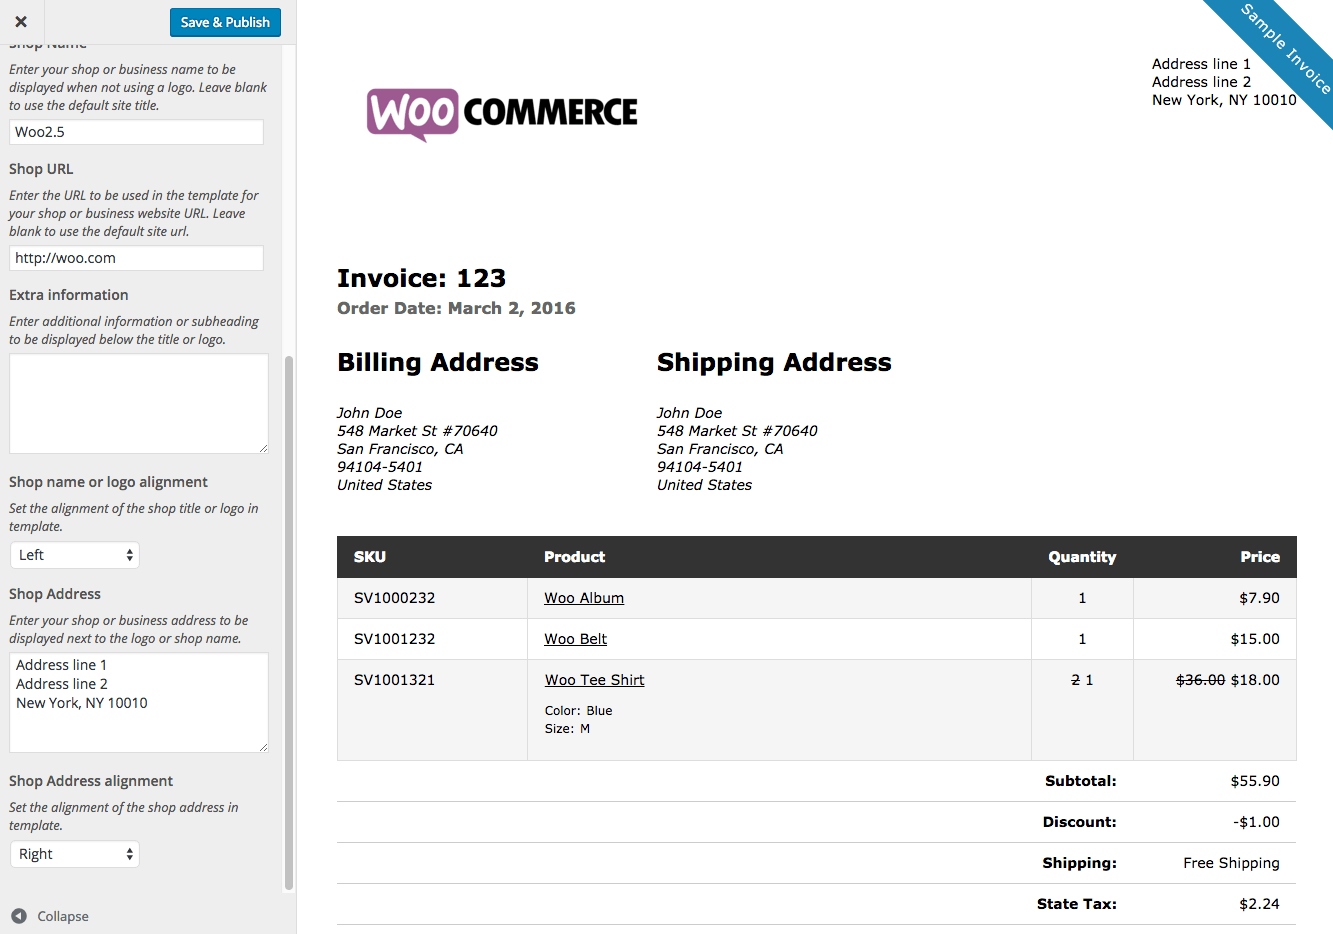 Aldiablosus  Winsome Woocommerce Print Invoices Amp Packing Lists  Woocommerce Docs With Fascinating Woocommerce Print Invoices  Packing Lists Customizer With Easy On The Eye Sage Invoices Also Sample Invoice Template Australia In Addition Invoice Number Format And Commercial Invoice Template Uk As Well As Ms Word Template Invoice Additionally Invoice S From Docswoocommercecom With Aldiablosus  Fascinating Woocommerce Print Invoices Amp Packing Lists  Woocommerce Docs With Easy On The Eye Woocommerce Print Invoices  Packing Lists Customizer And Winsome Sage Invoices Also Sample Invoice Template Australia In Addition Invoice Number Format From Docswoocommercecom